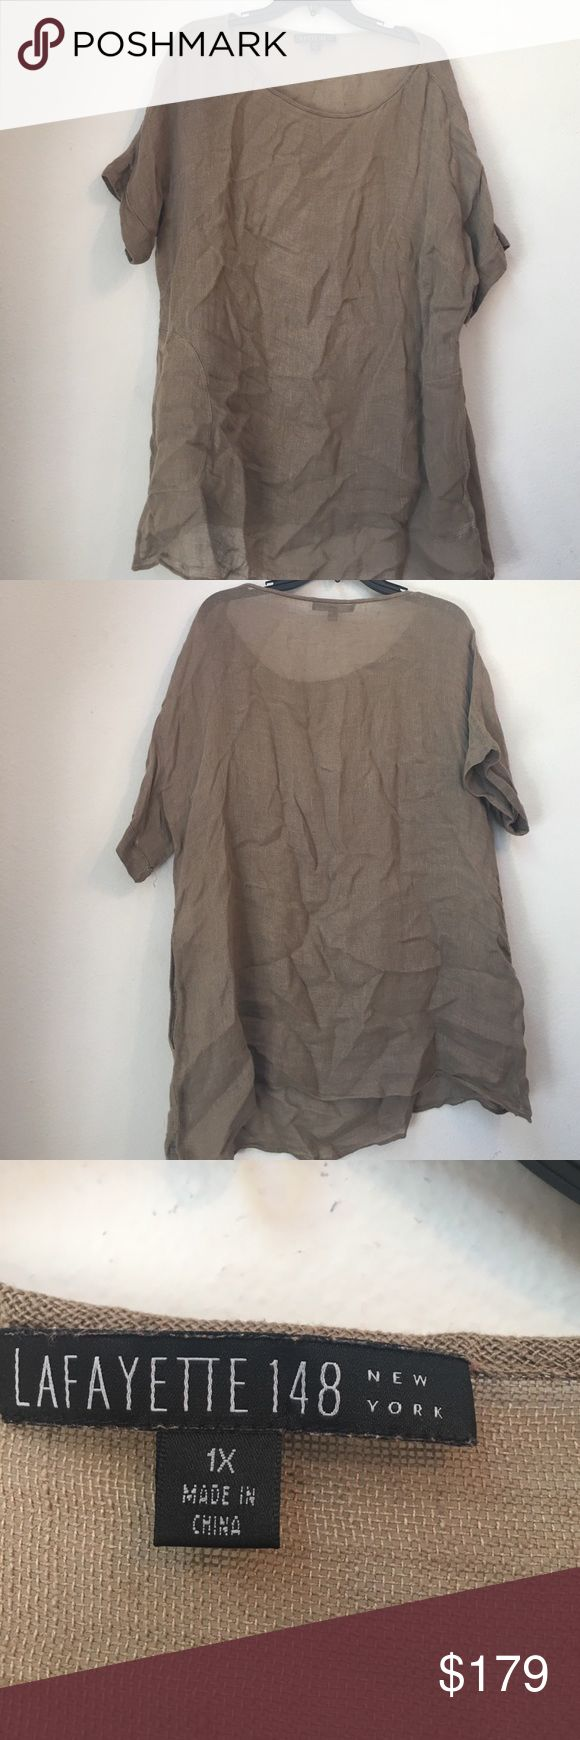 Host pick Lafayette 148 beige short sleeve top 1x Made from 100% linen Thanks so much for looking. I accept all reasonable offers!!  Host pick for plus size posh party 4/12/17!! Lafayette 148 New York Tops Blouses